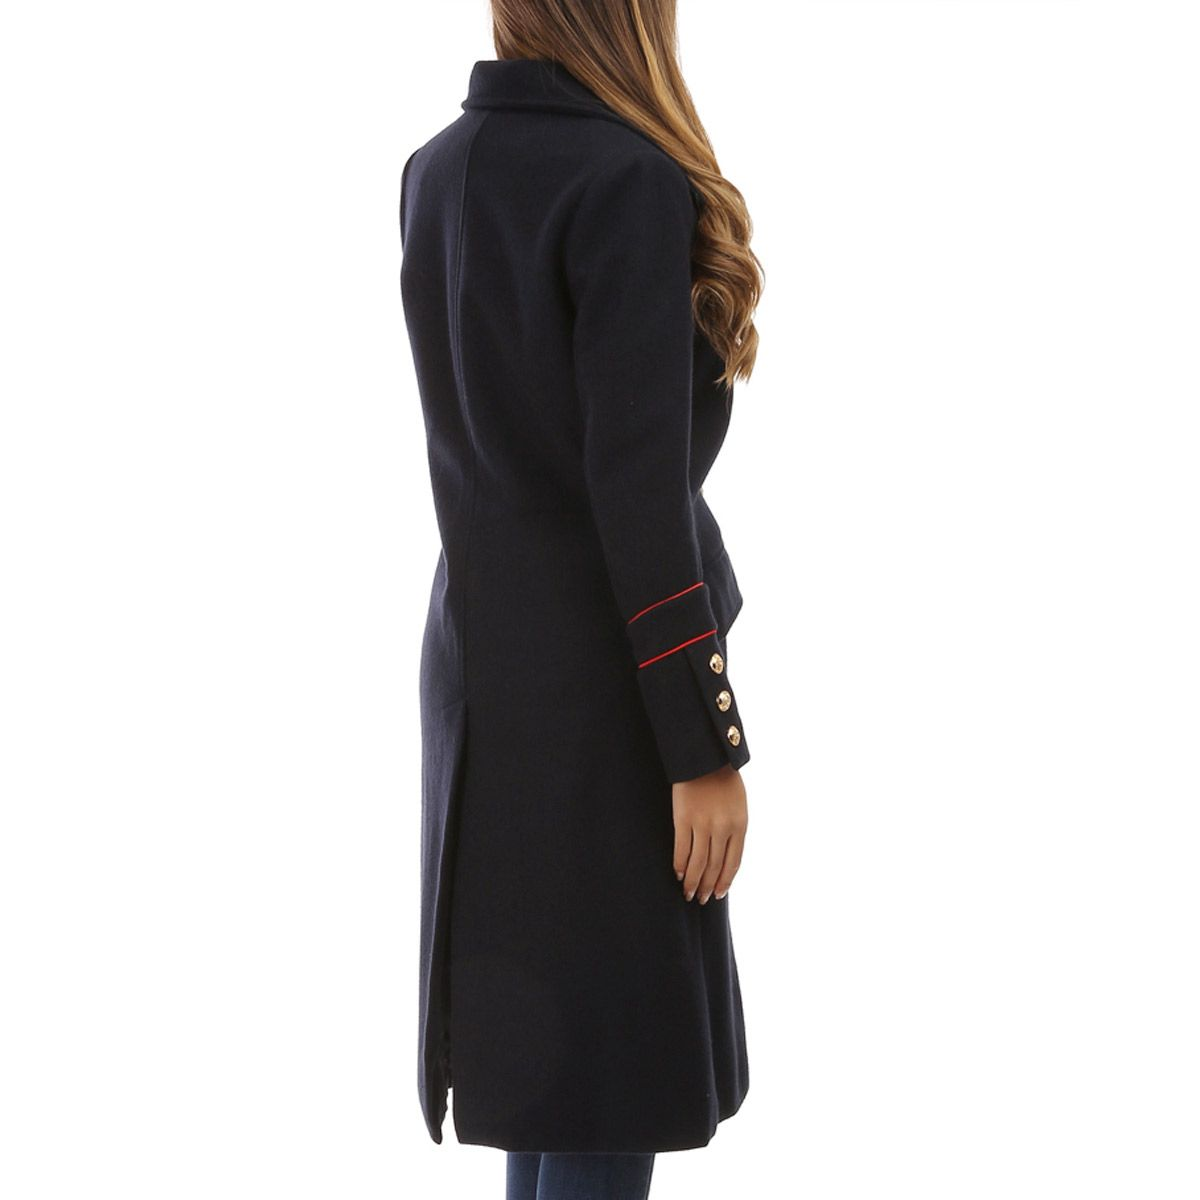 Manteau long bleu marine style officier